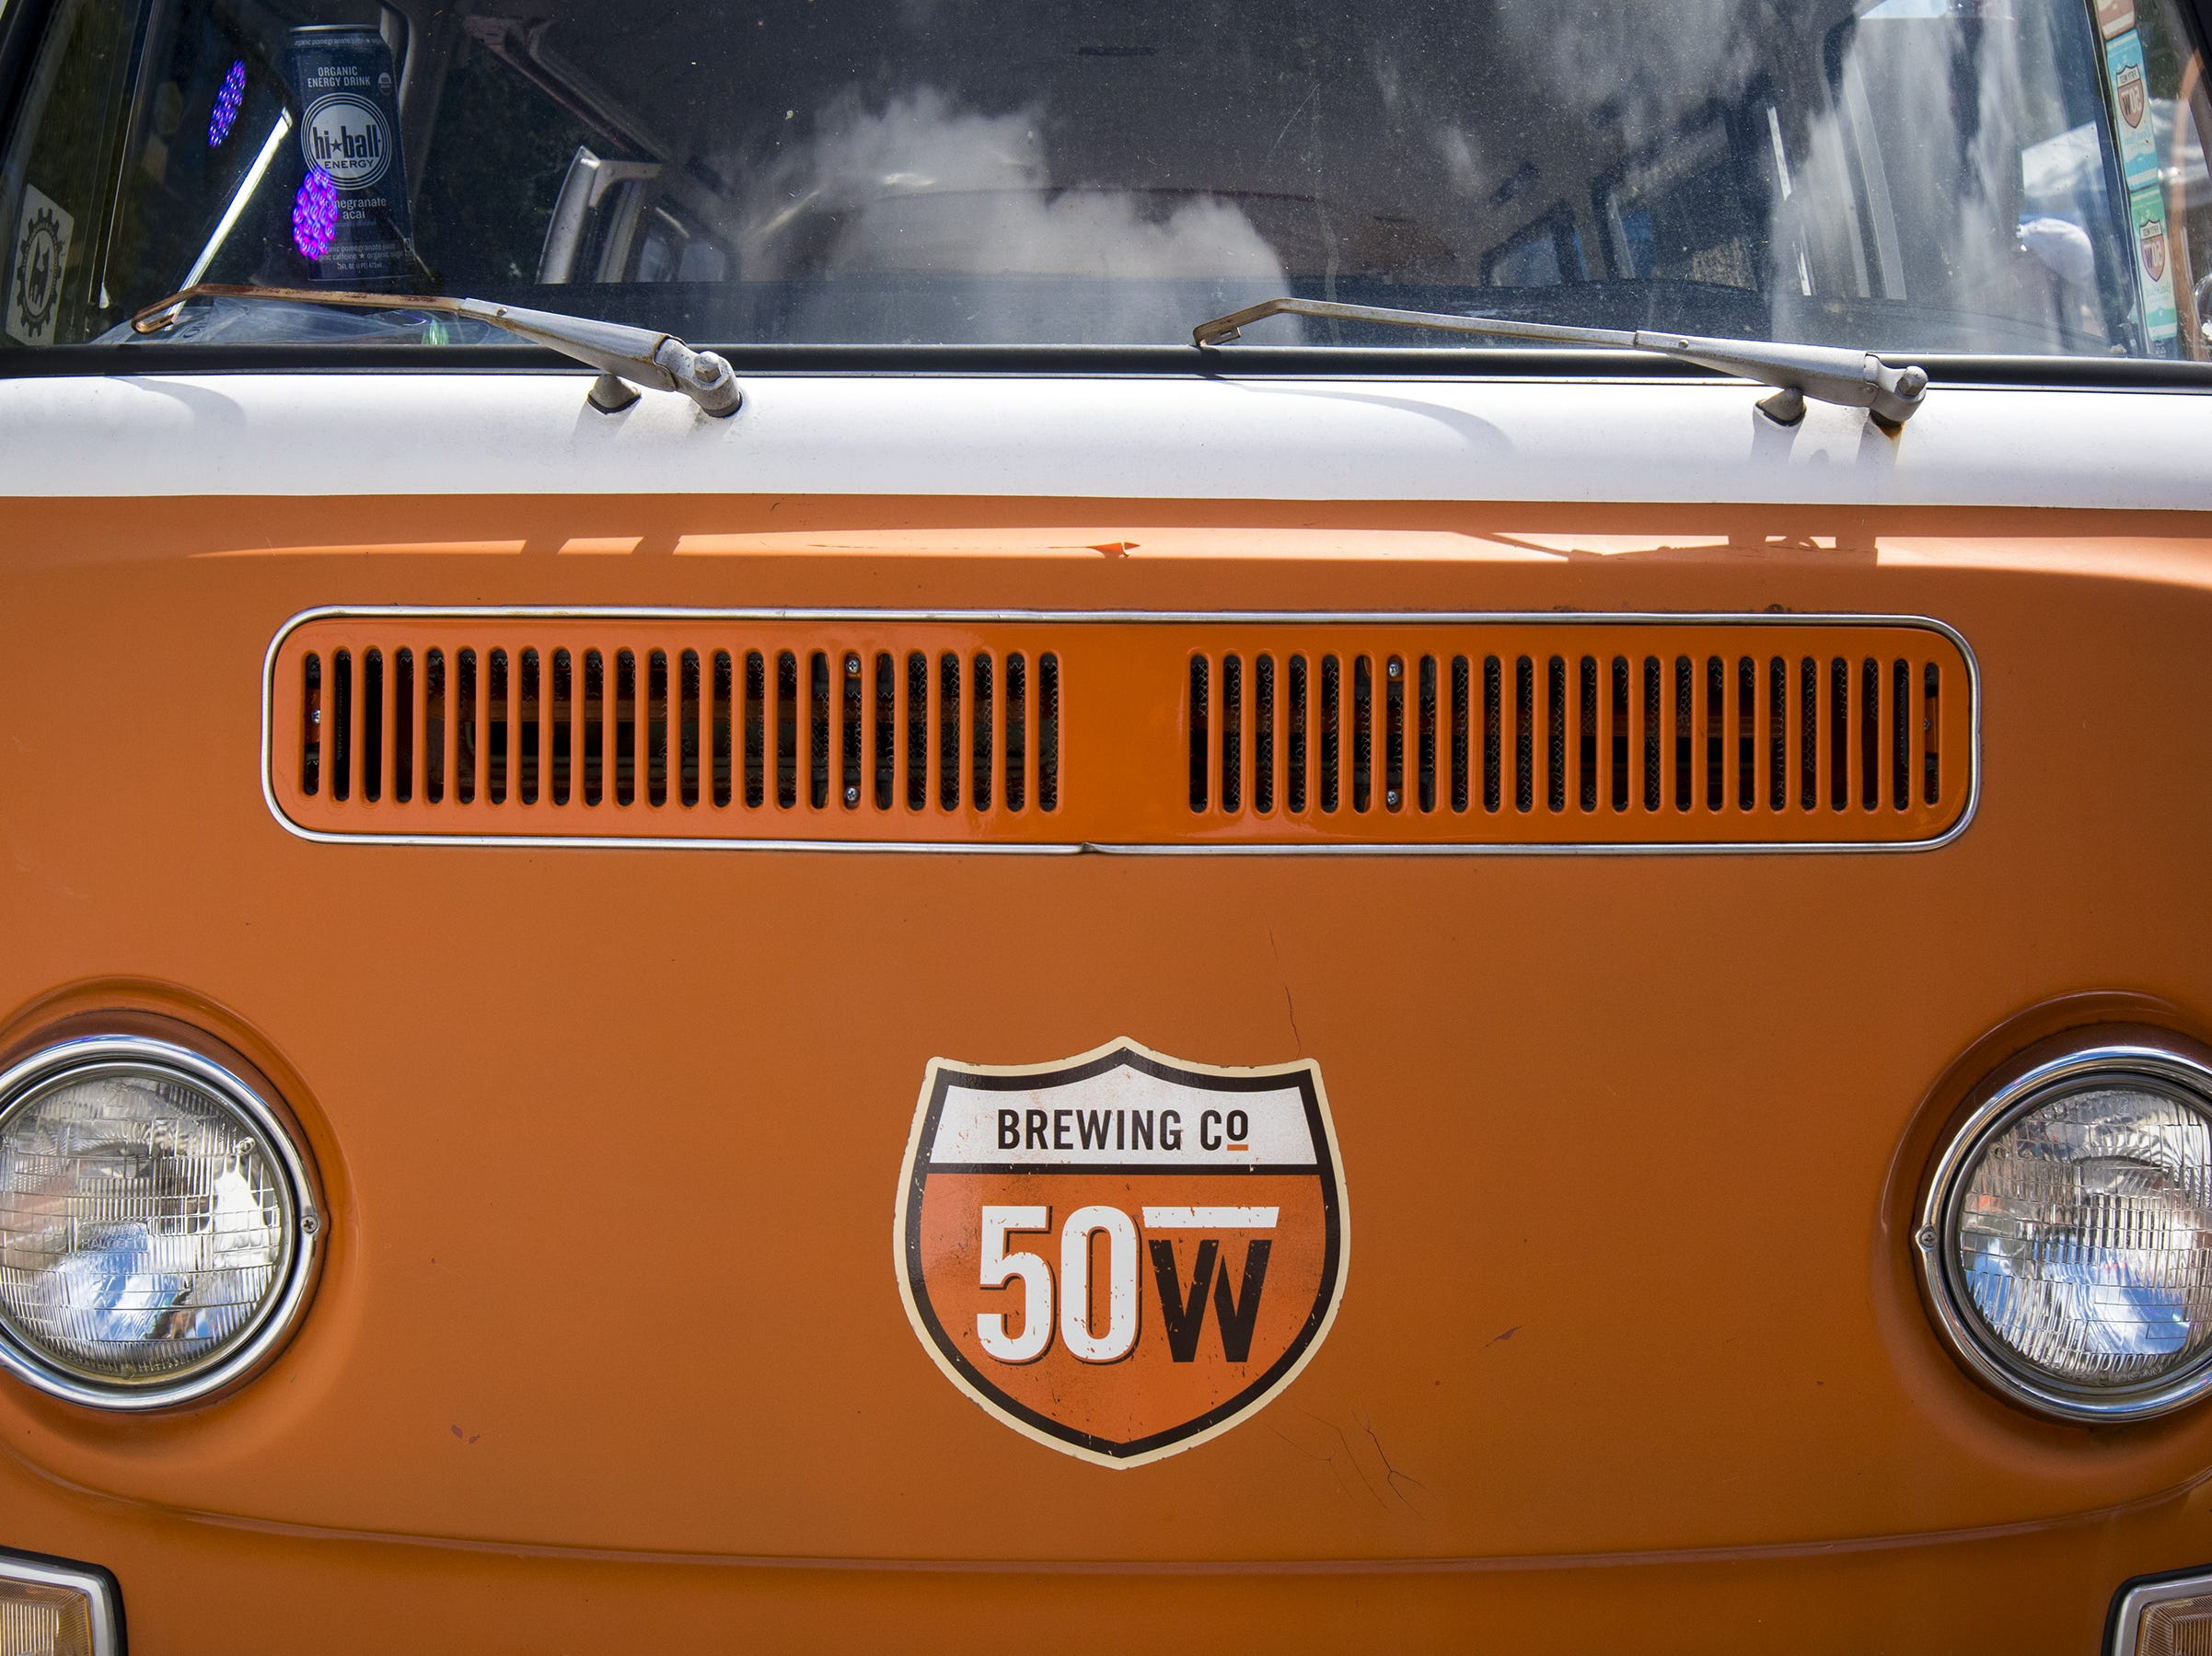 The iconic 50 West van sits at Fifty Fest Saturday, September 15, 2018 in Cincinnati, Ohio. The festival features beers from tons of local breweries.